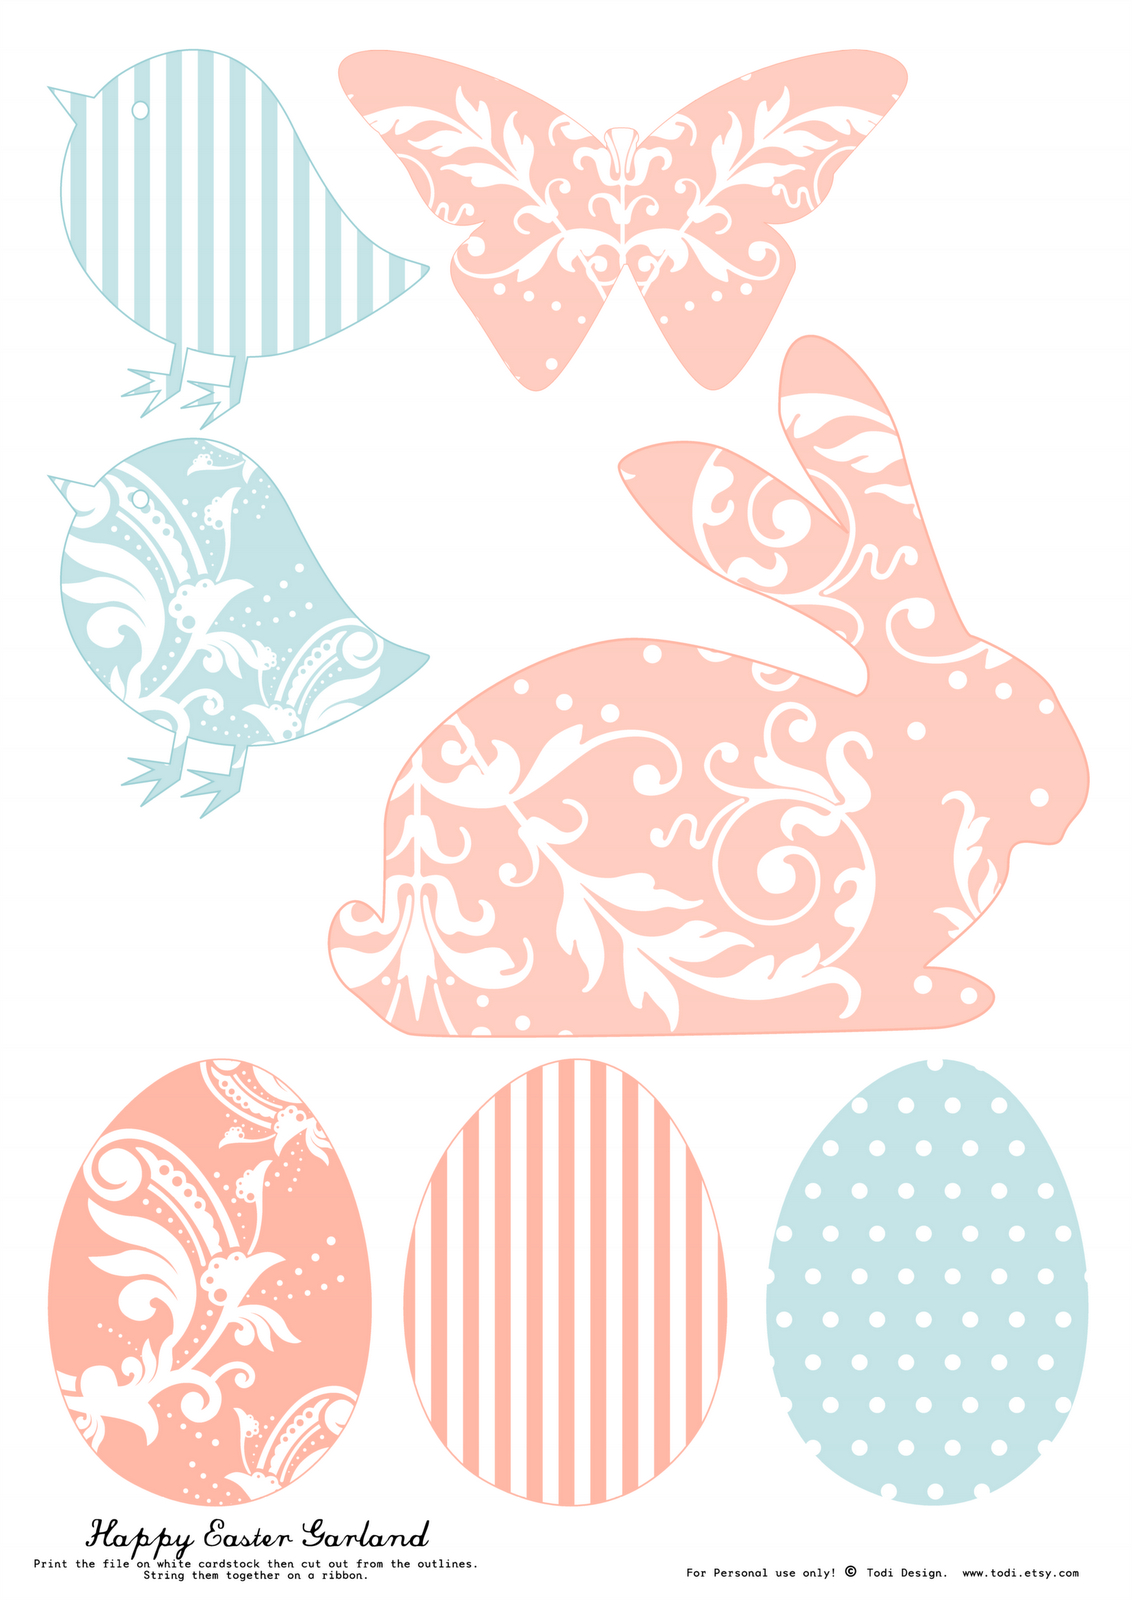 Todi: Free Printables For Easter Decoration. Th Print Used For This - Free Printable Easter Images